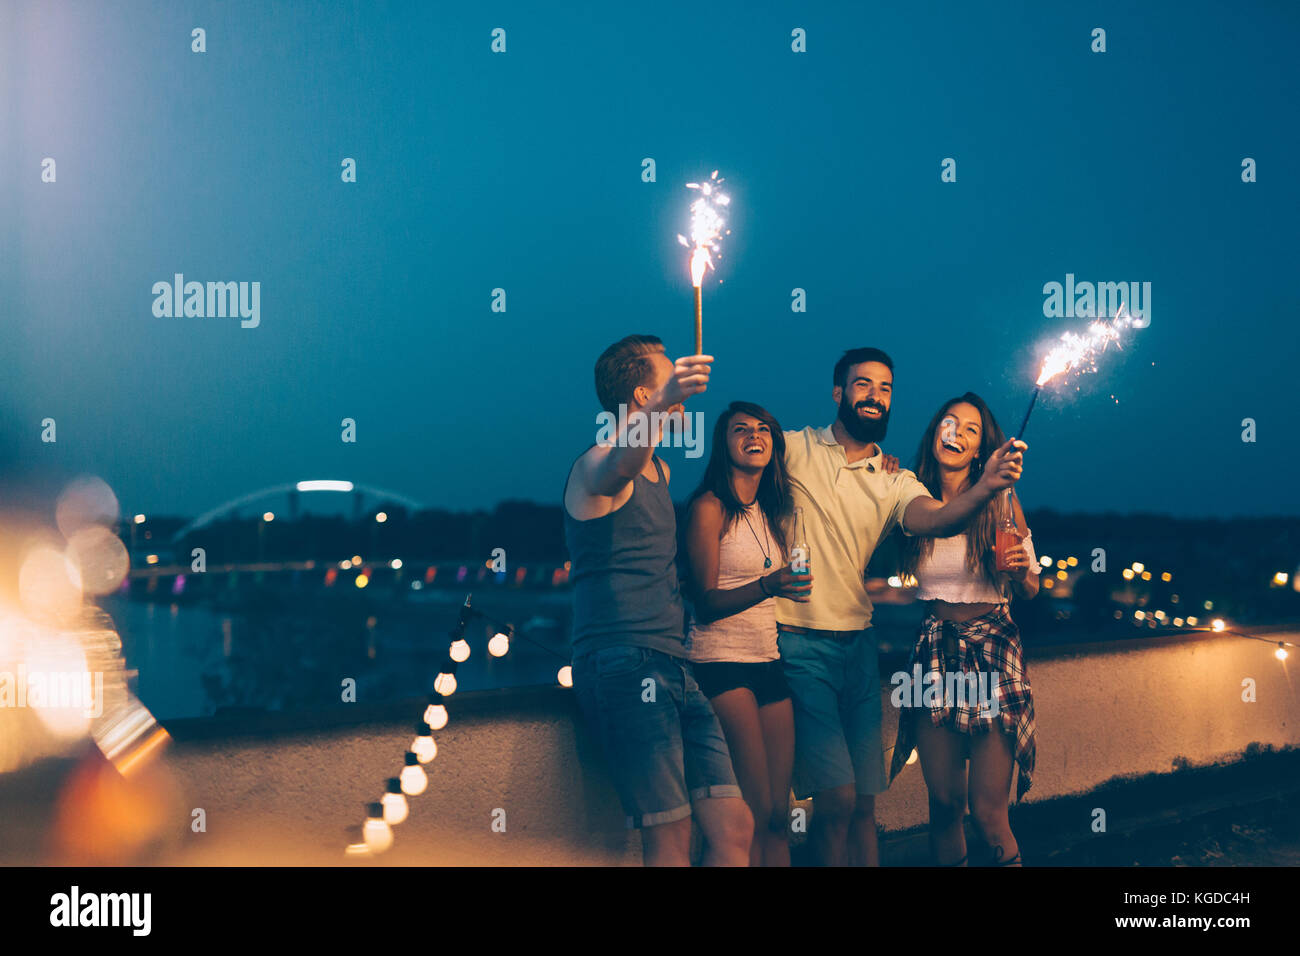 Group of happy friends celebrating at rooftop - Stock Image